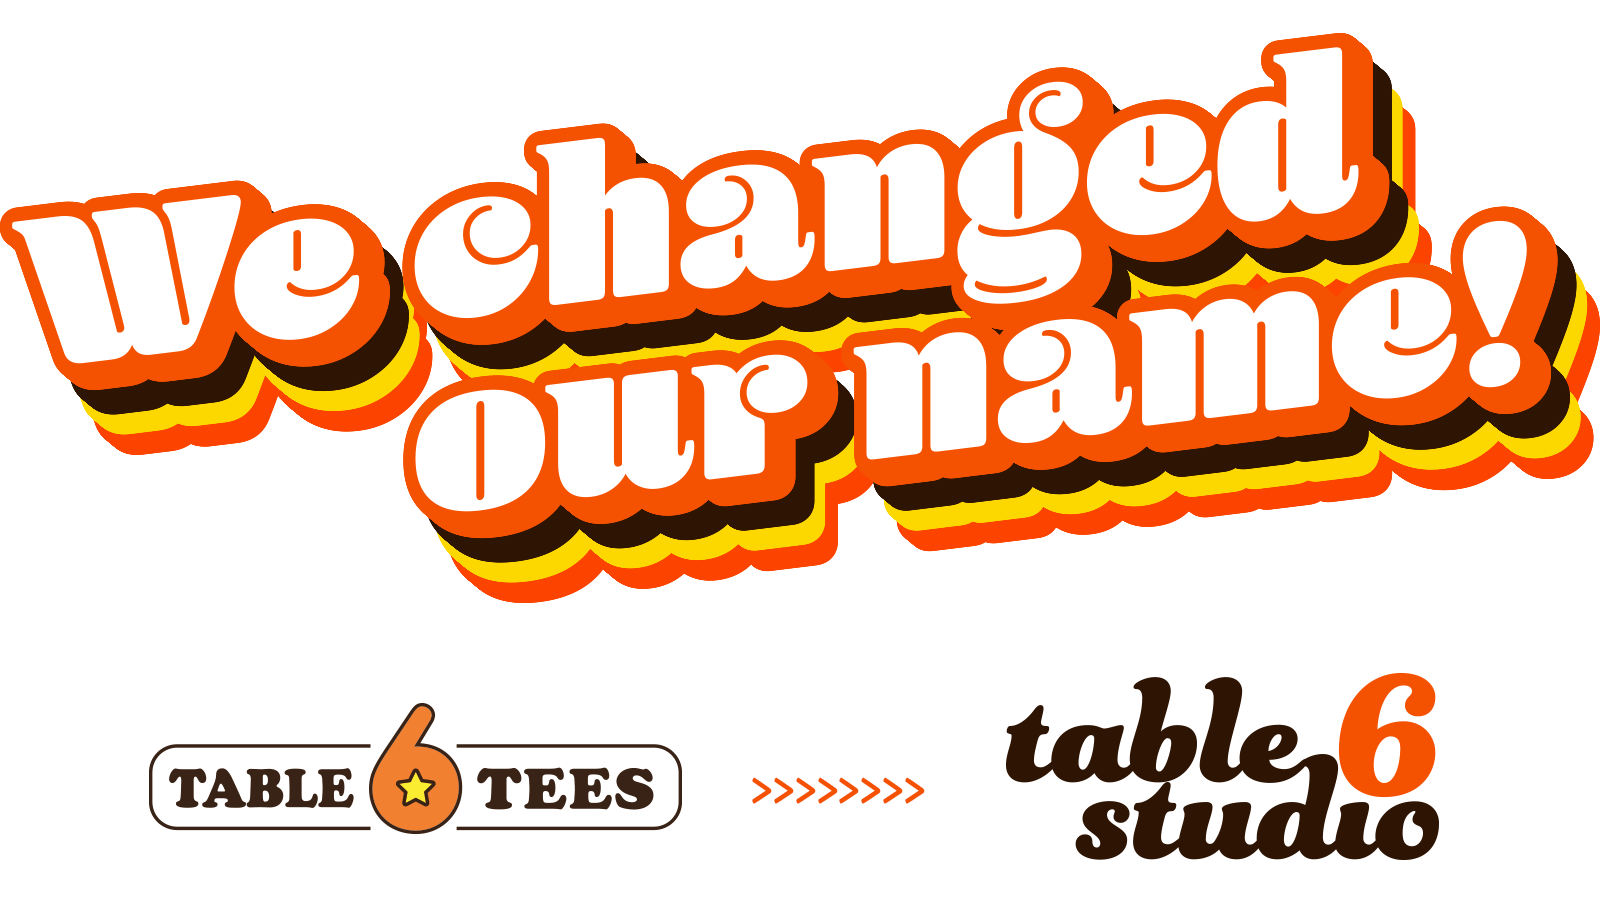 Table 6 Tees is now Table 6 Studio on Etsy